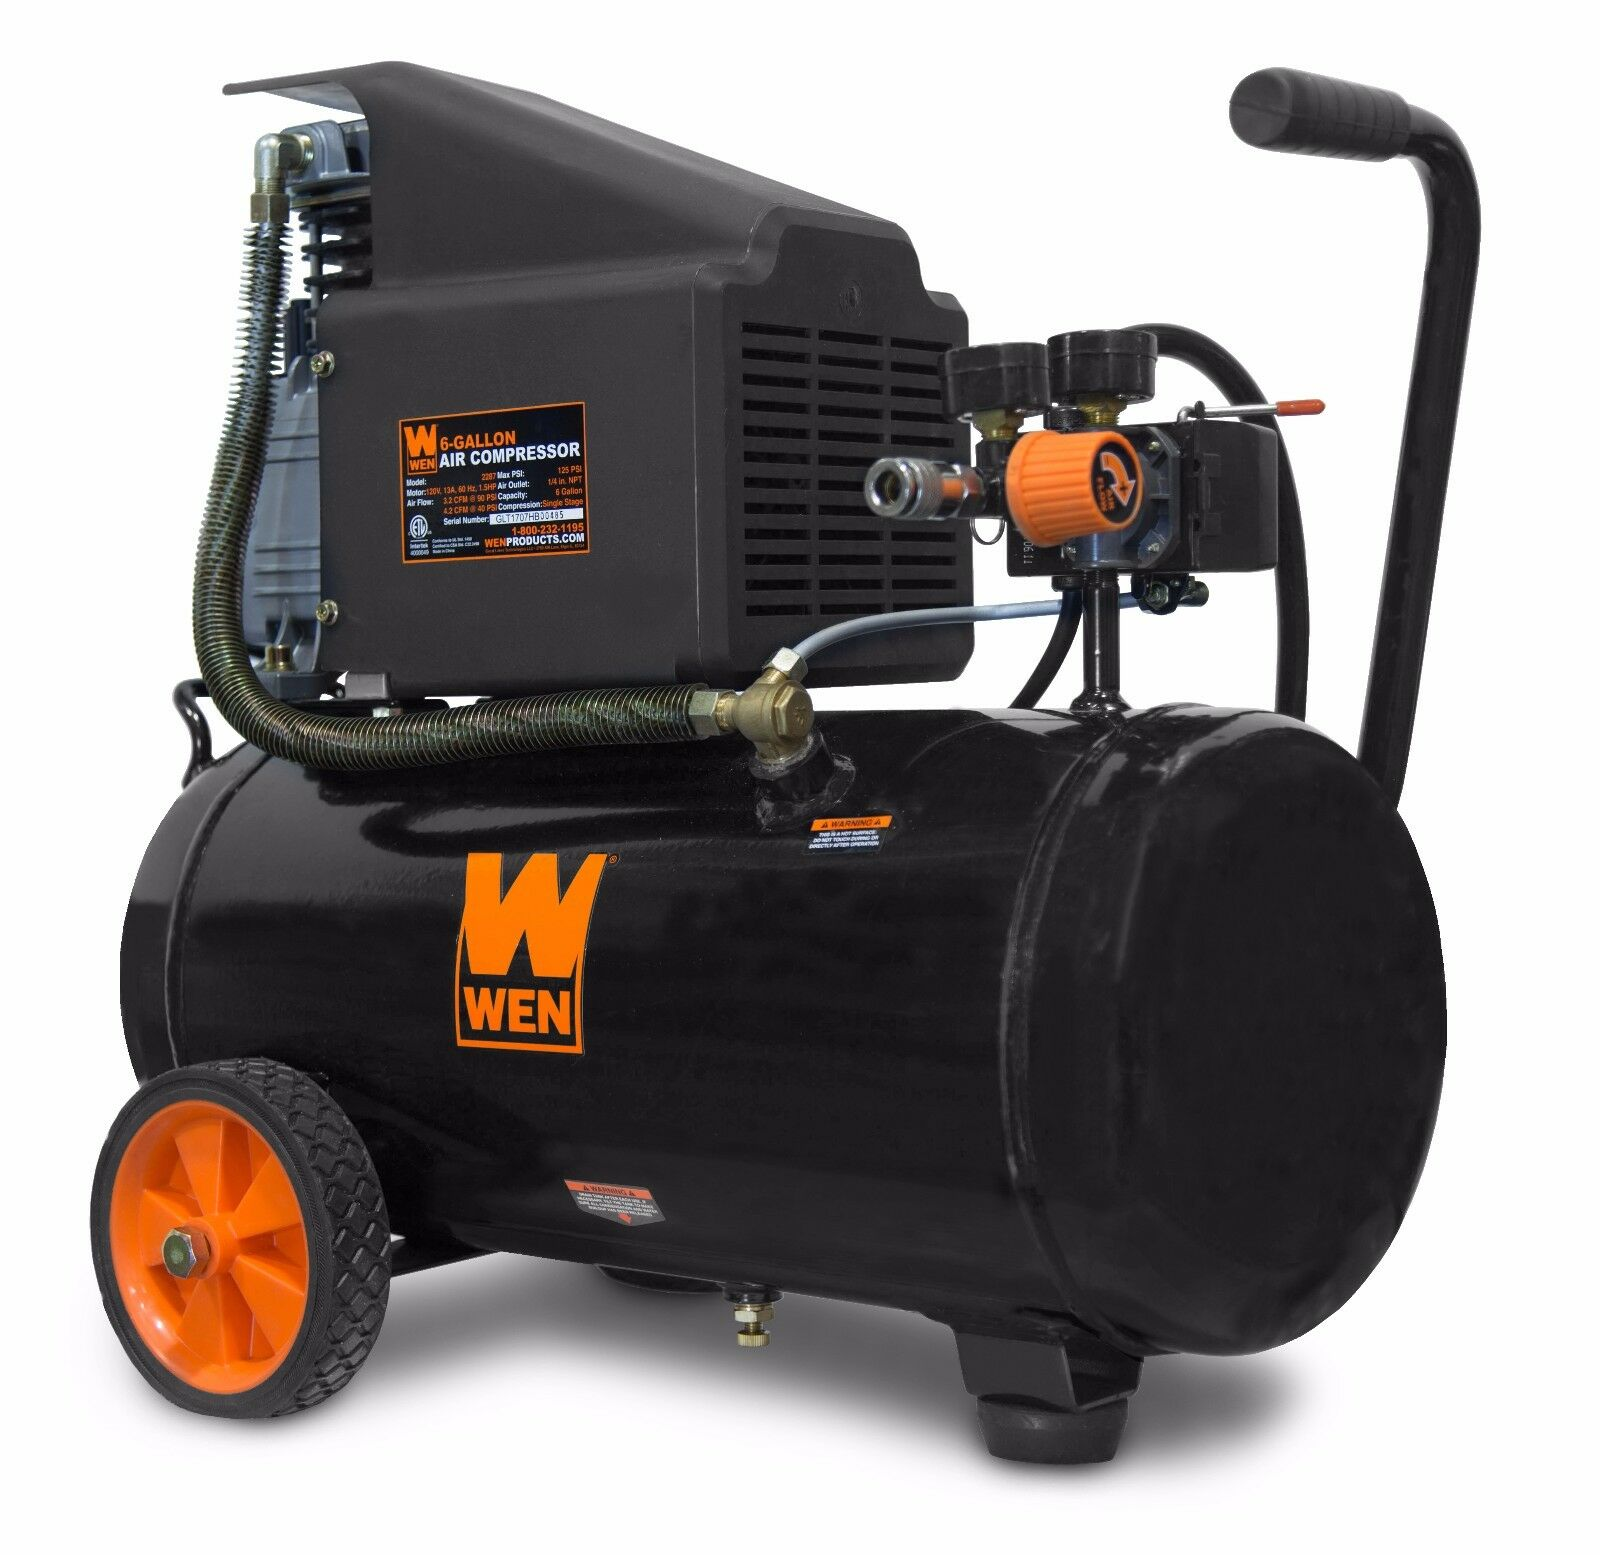 WEN 2287 6-Gallon Oil-Lubricated Portable Horizontal Air Compressor. Available Now for 128.44